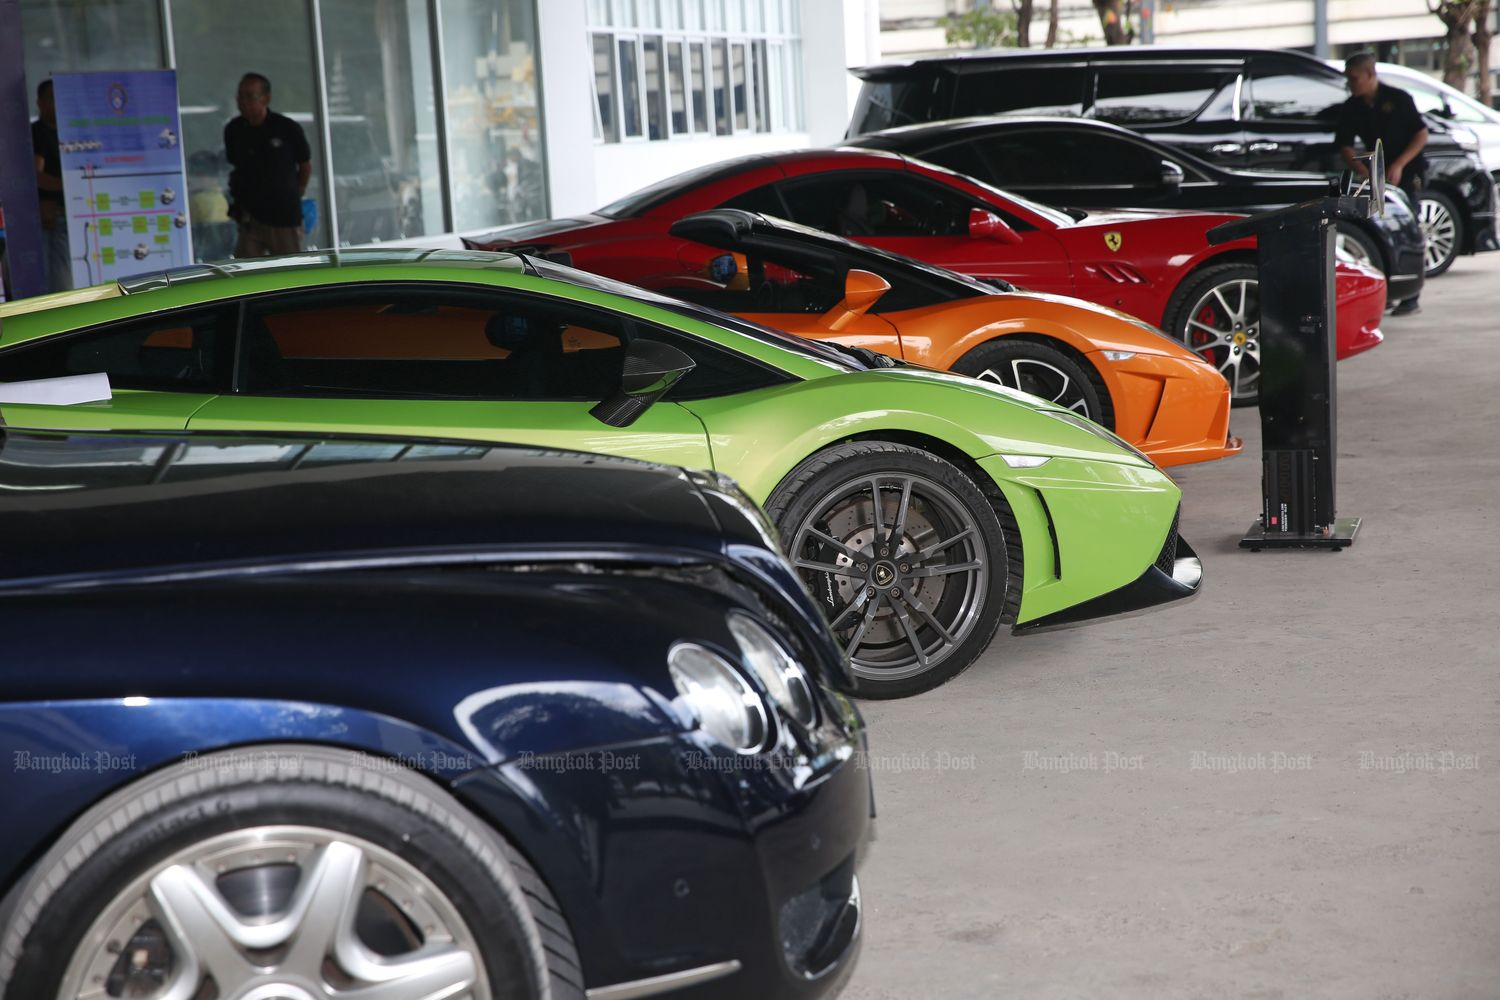 Imported luxury cars with forged registration numbers and papers are shown at the Crime Suppression Division in Bangkok in May. (Photo by Varuth Hirunyatheb)